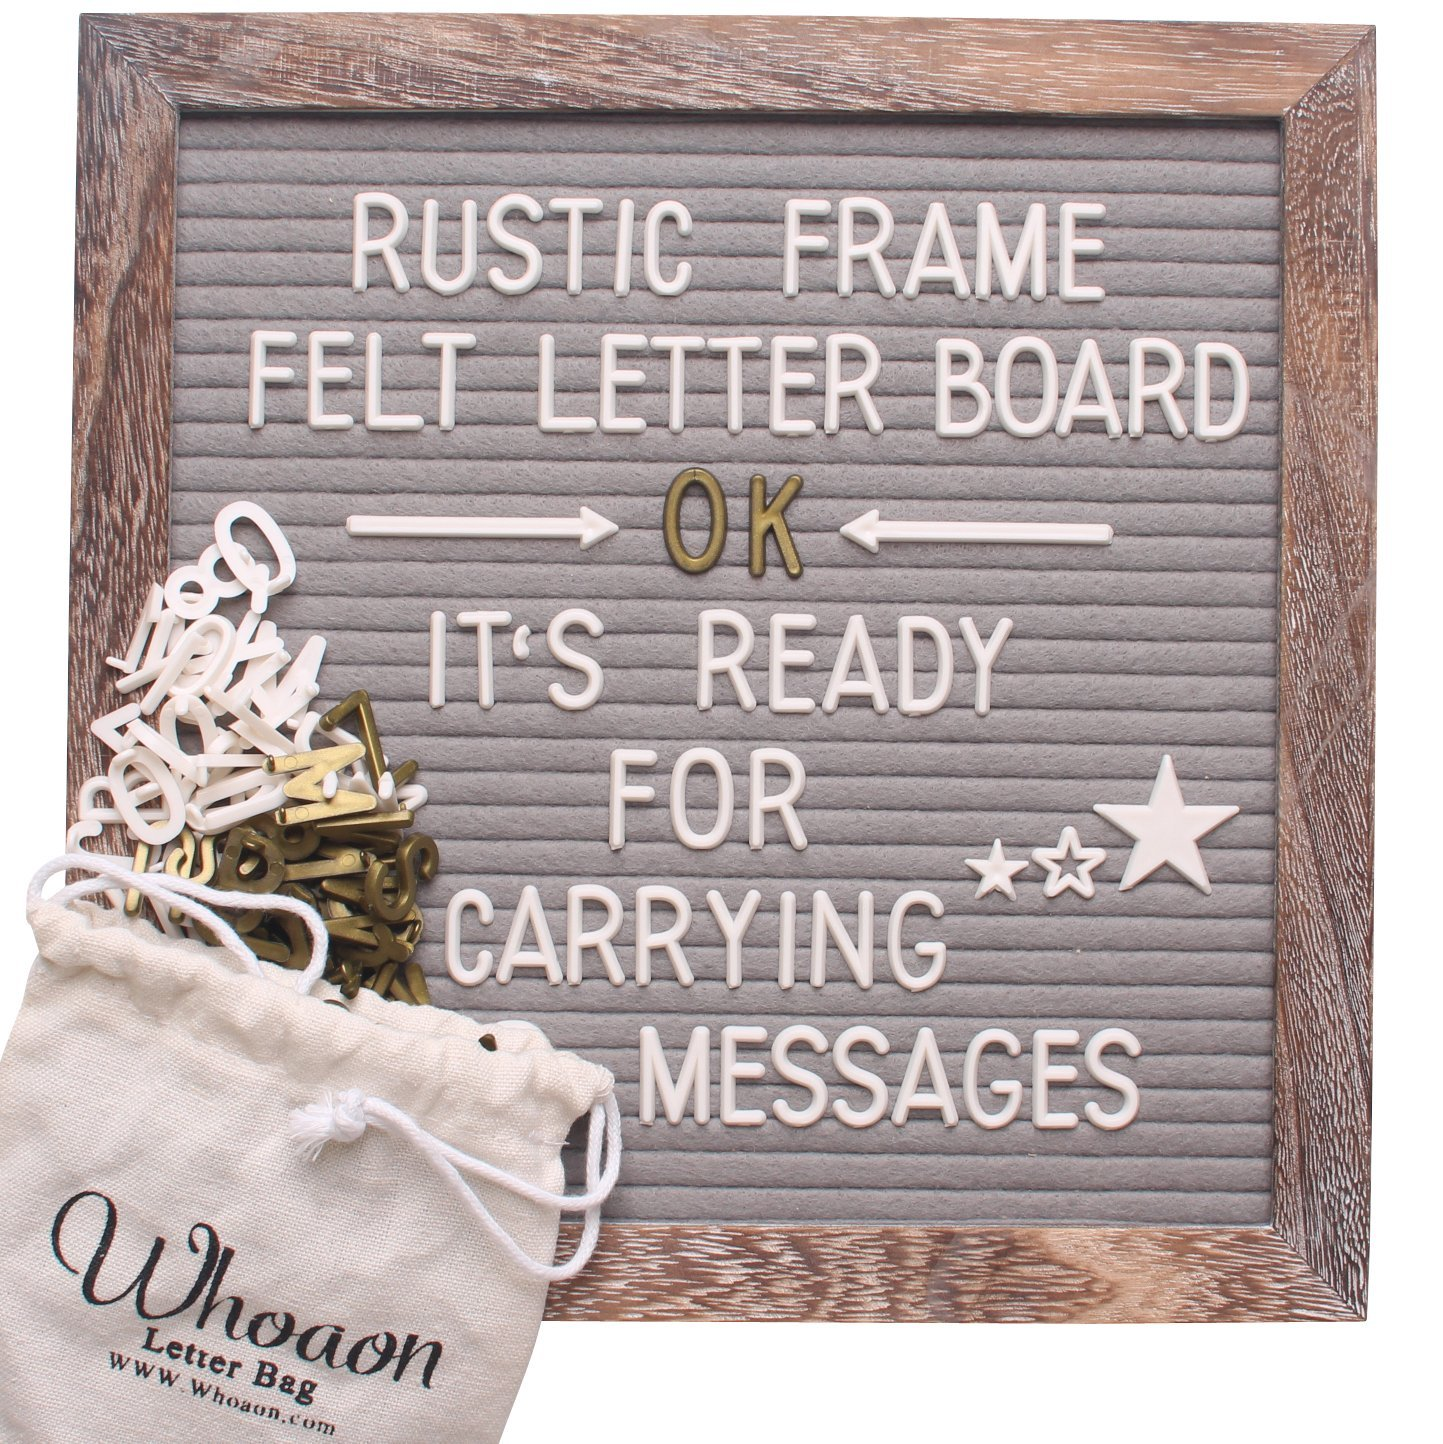 Rustic Frame Gray Felt Letter Board 10 x 10 inches. 296 White & 145 Gold Plastic Letters + 12 Month & 7 Week Day Letters. Vintage-Processed Pine Wood Frame. by whoaon whoawhoa